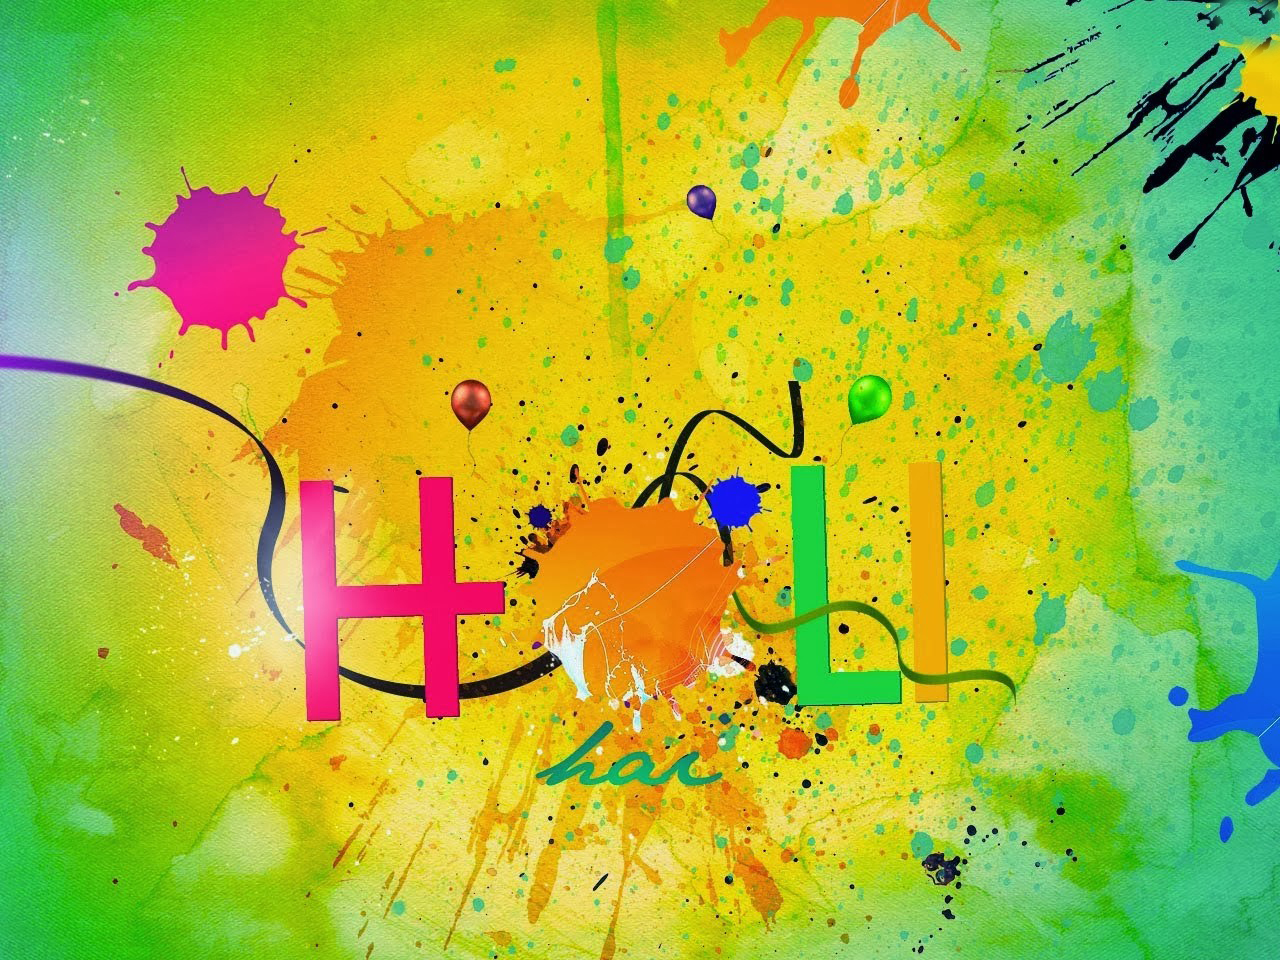 colorfull hd wallpaper image for holi 2018